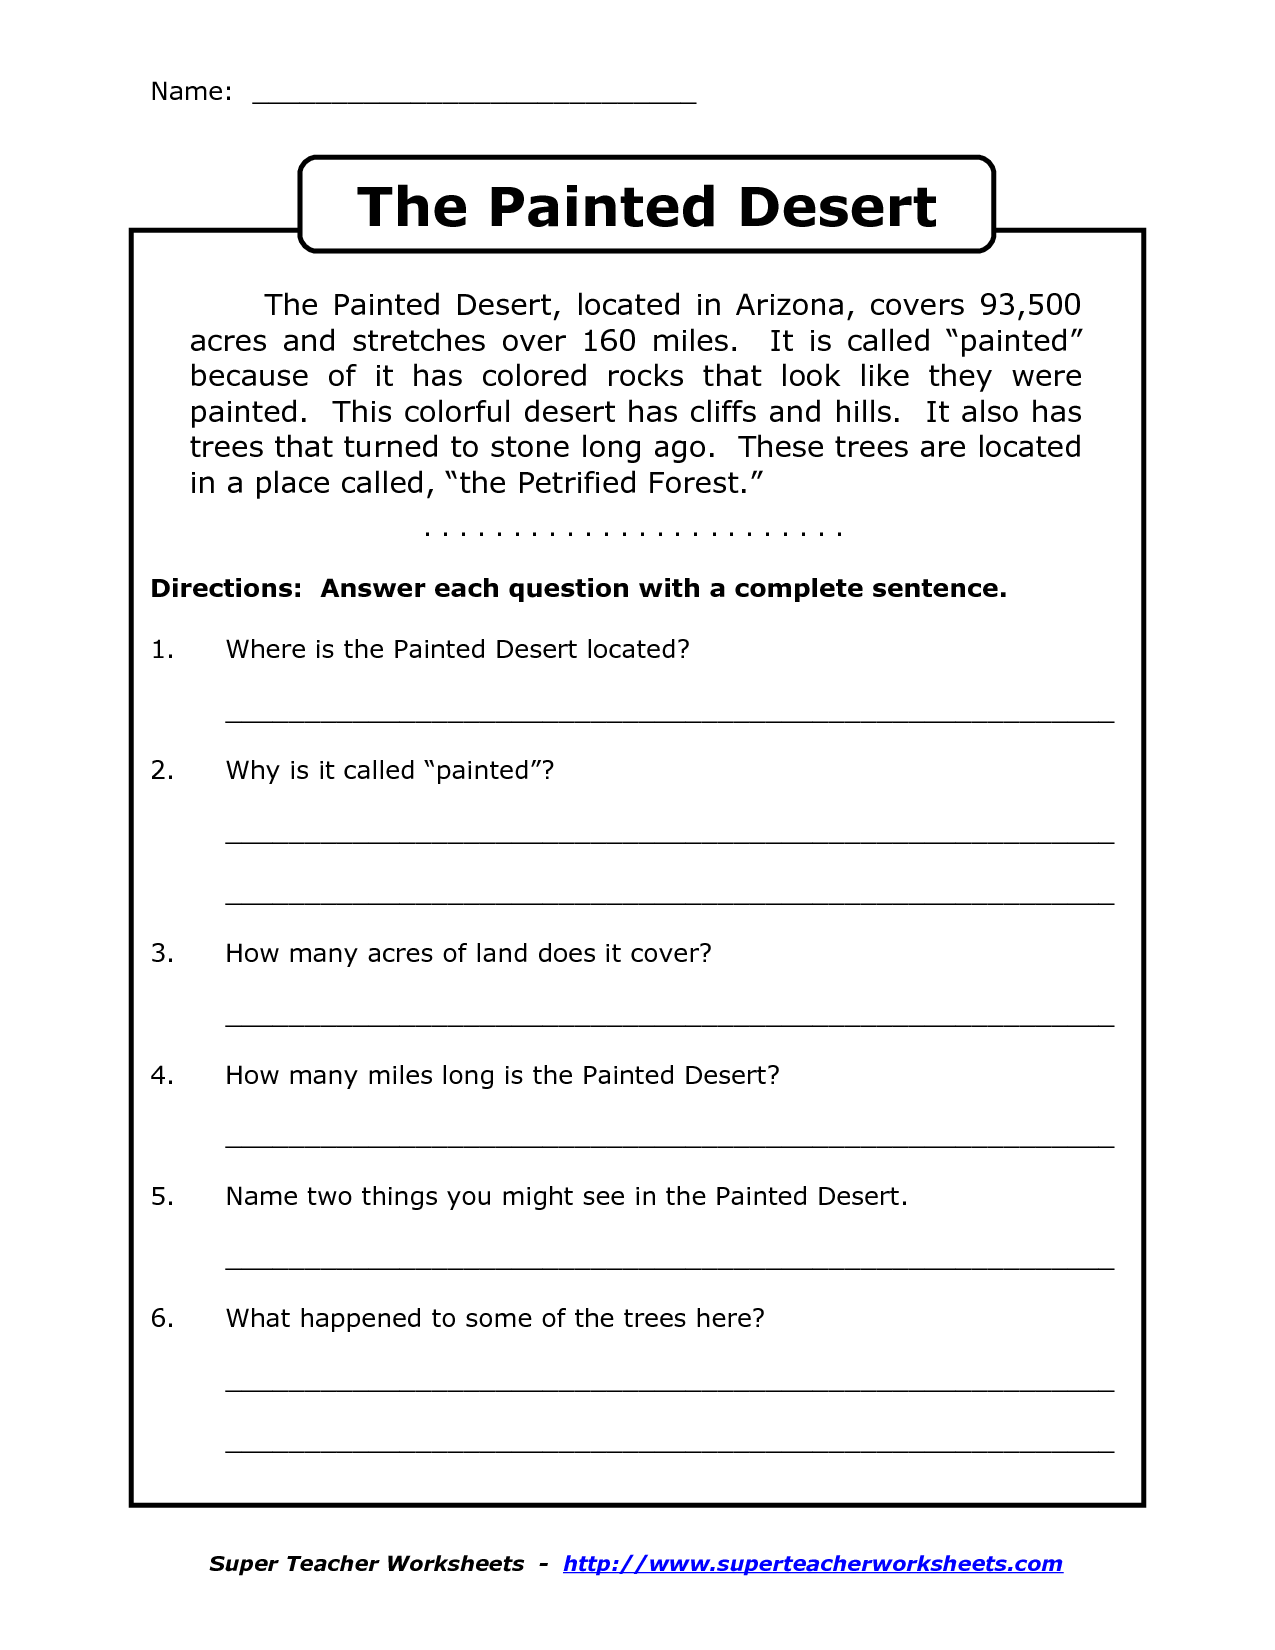 worksheet Free Comprehension Worksheets reading worksheets for 4th grade comprehension 3 name the painted desert